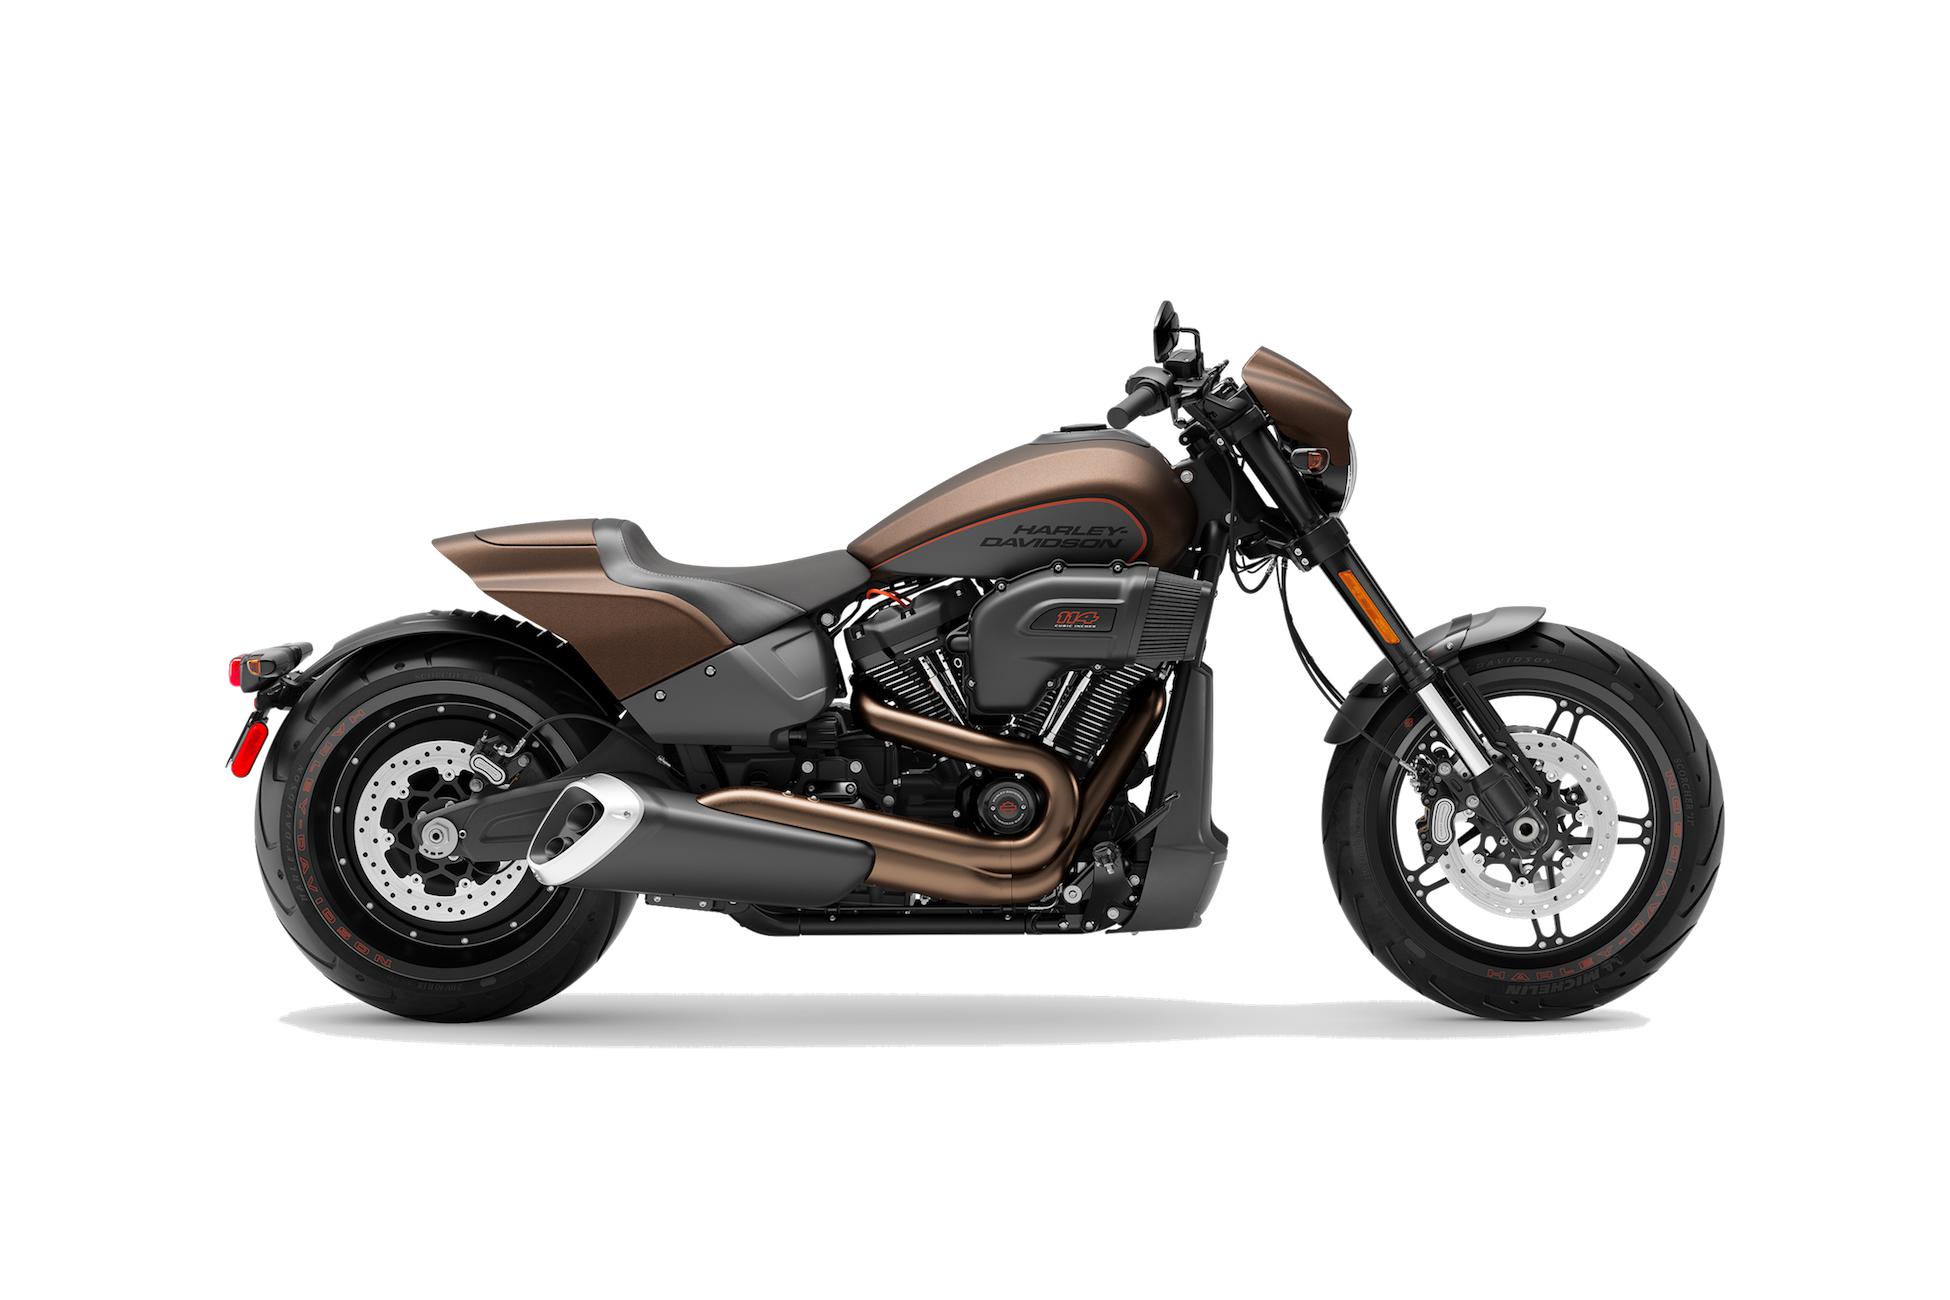 2019 H-D® FXDR™ 114 in Rawhide Denim